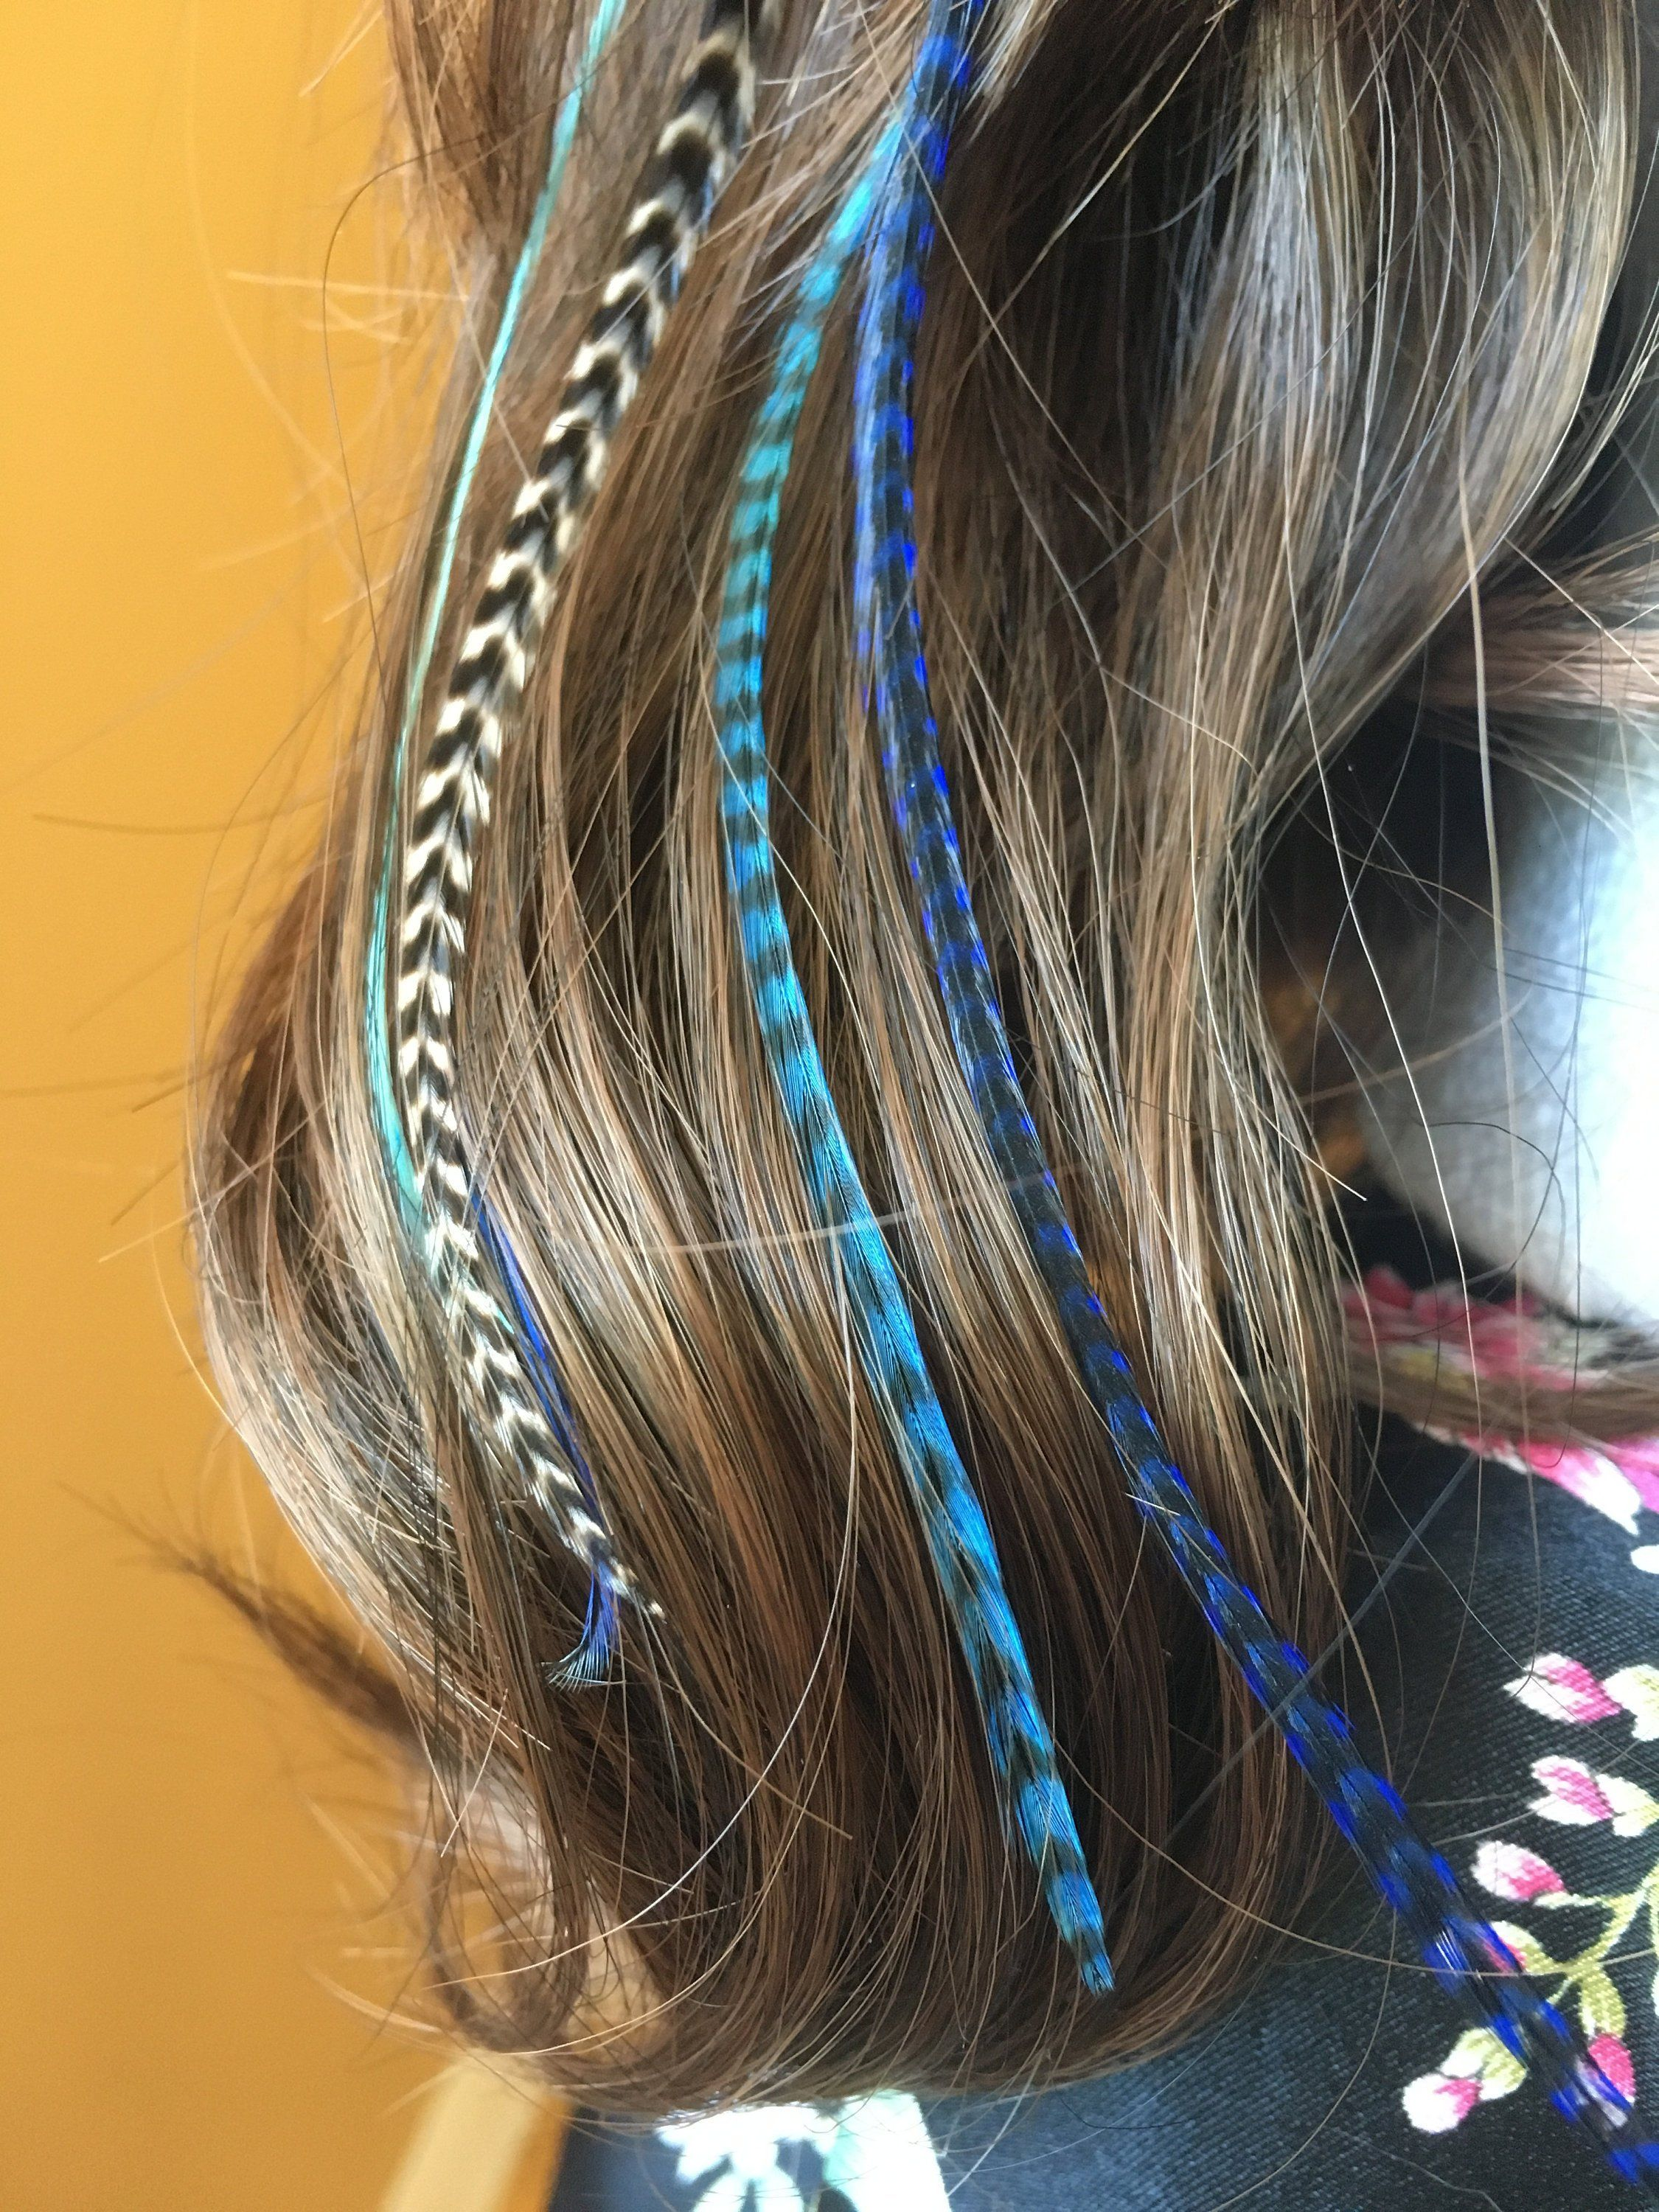 Feather Hair Extension Clip In Blue Turquoise Pale Blue And Grizzly Choice Of Clip Color Hair Clip Festival Hair Blue Hair Feathers Feathered Hairstyles Hair Extension Clips Colored Hair Extensions